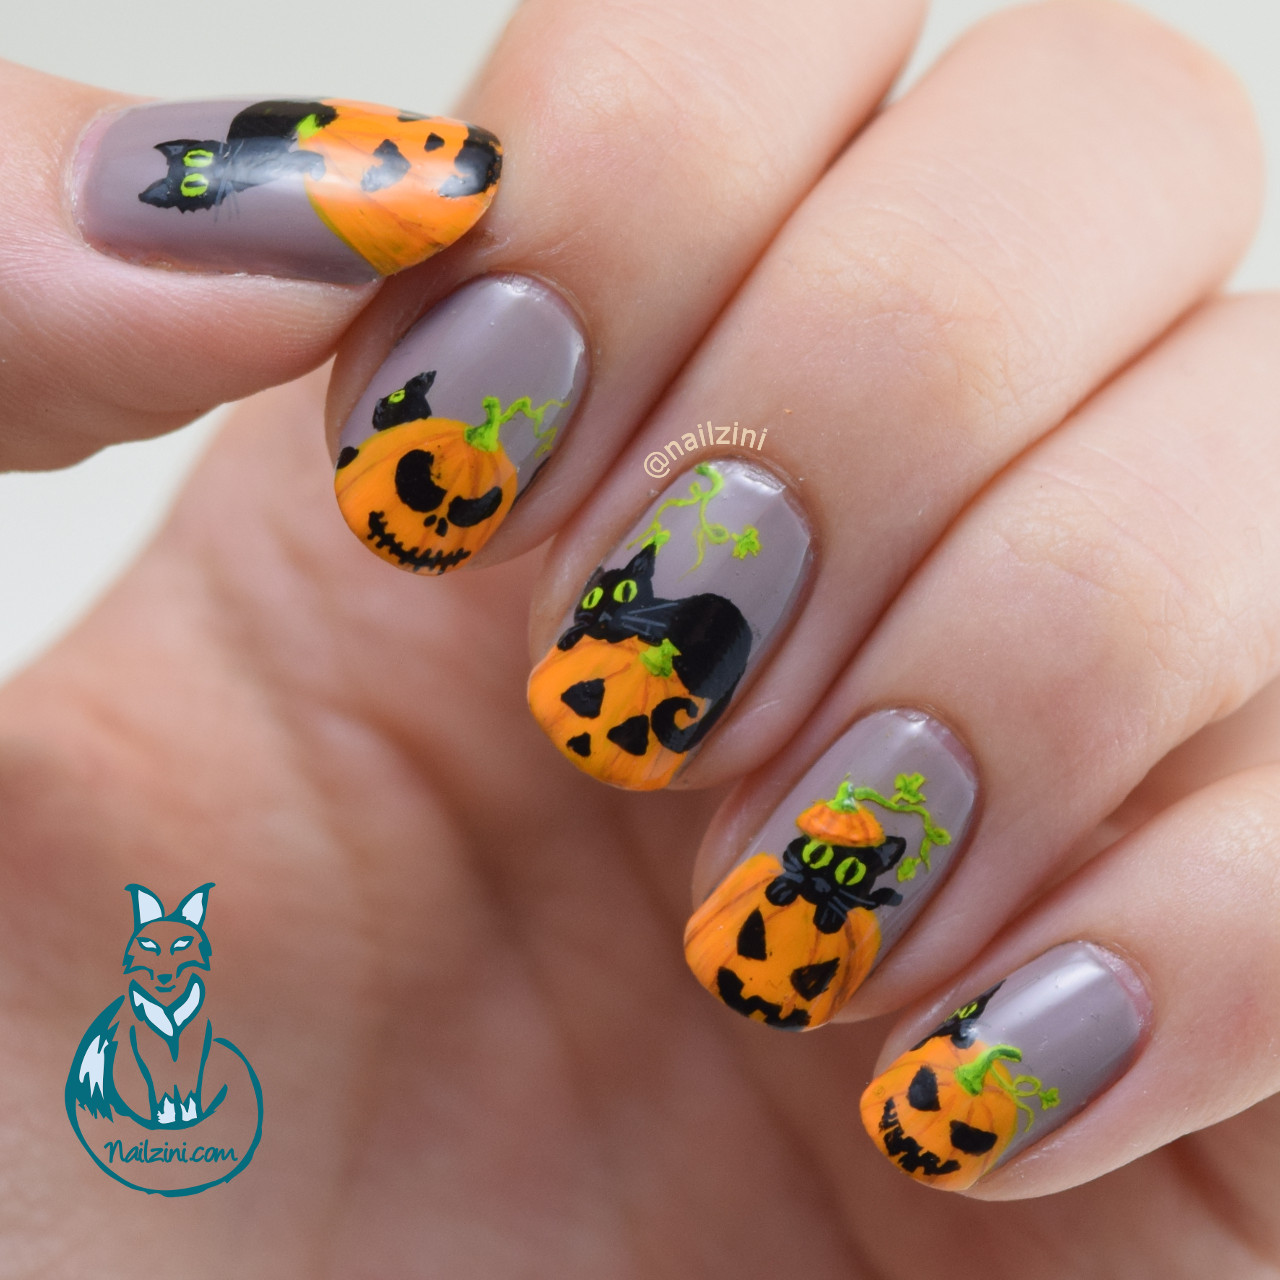 Black Cats and Pumpkins Nail Art | Nailzini: A Nail Art Blog